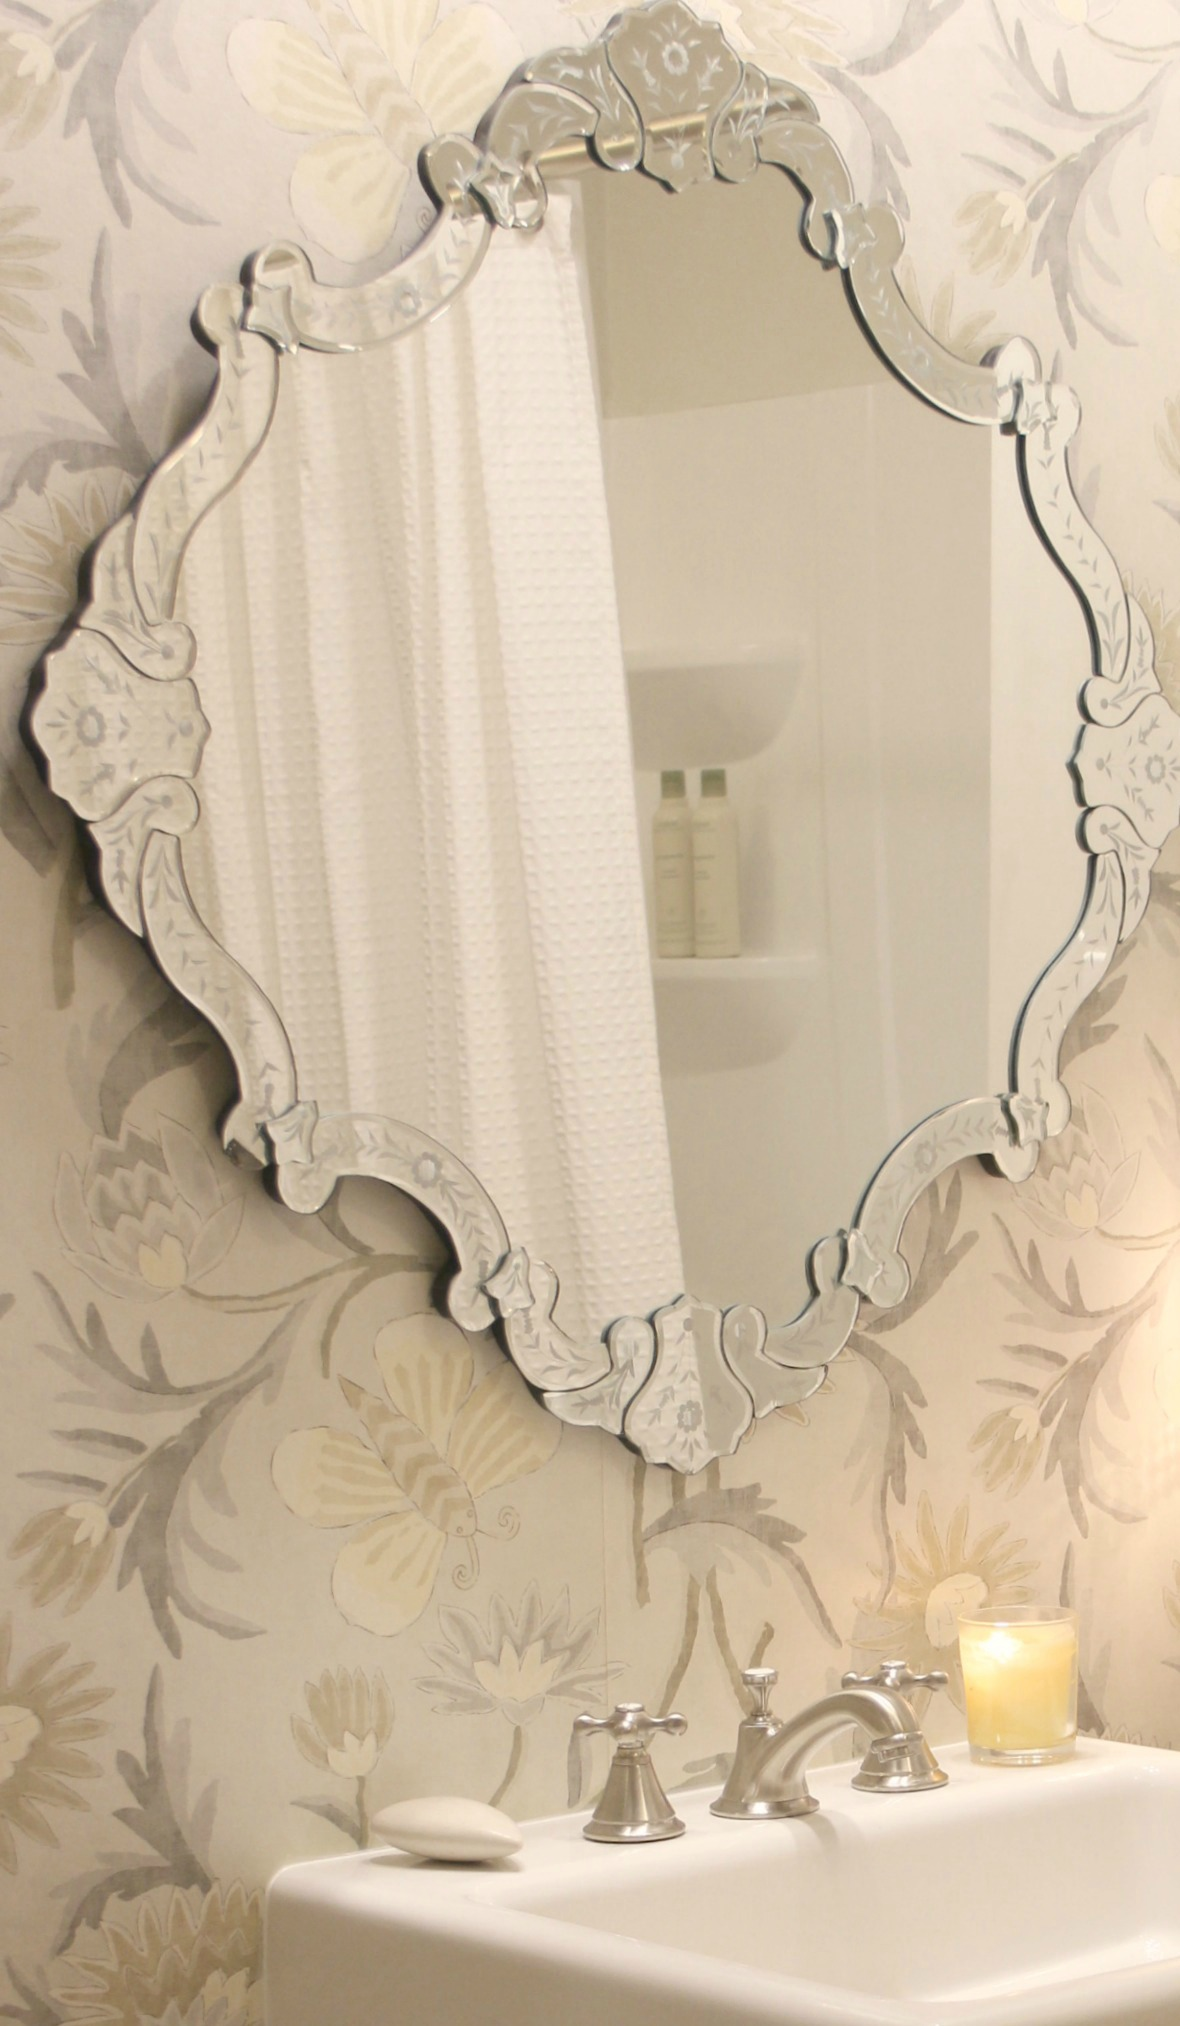 In a classic bathroom, fireclay modern farmhouse console sink. Venetian mirror over sink. Wallpaper is Thibaut. Come explore How to Decorate a Room Without Breaking the Bank: Low Cost Design Reminders.